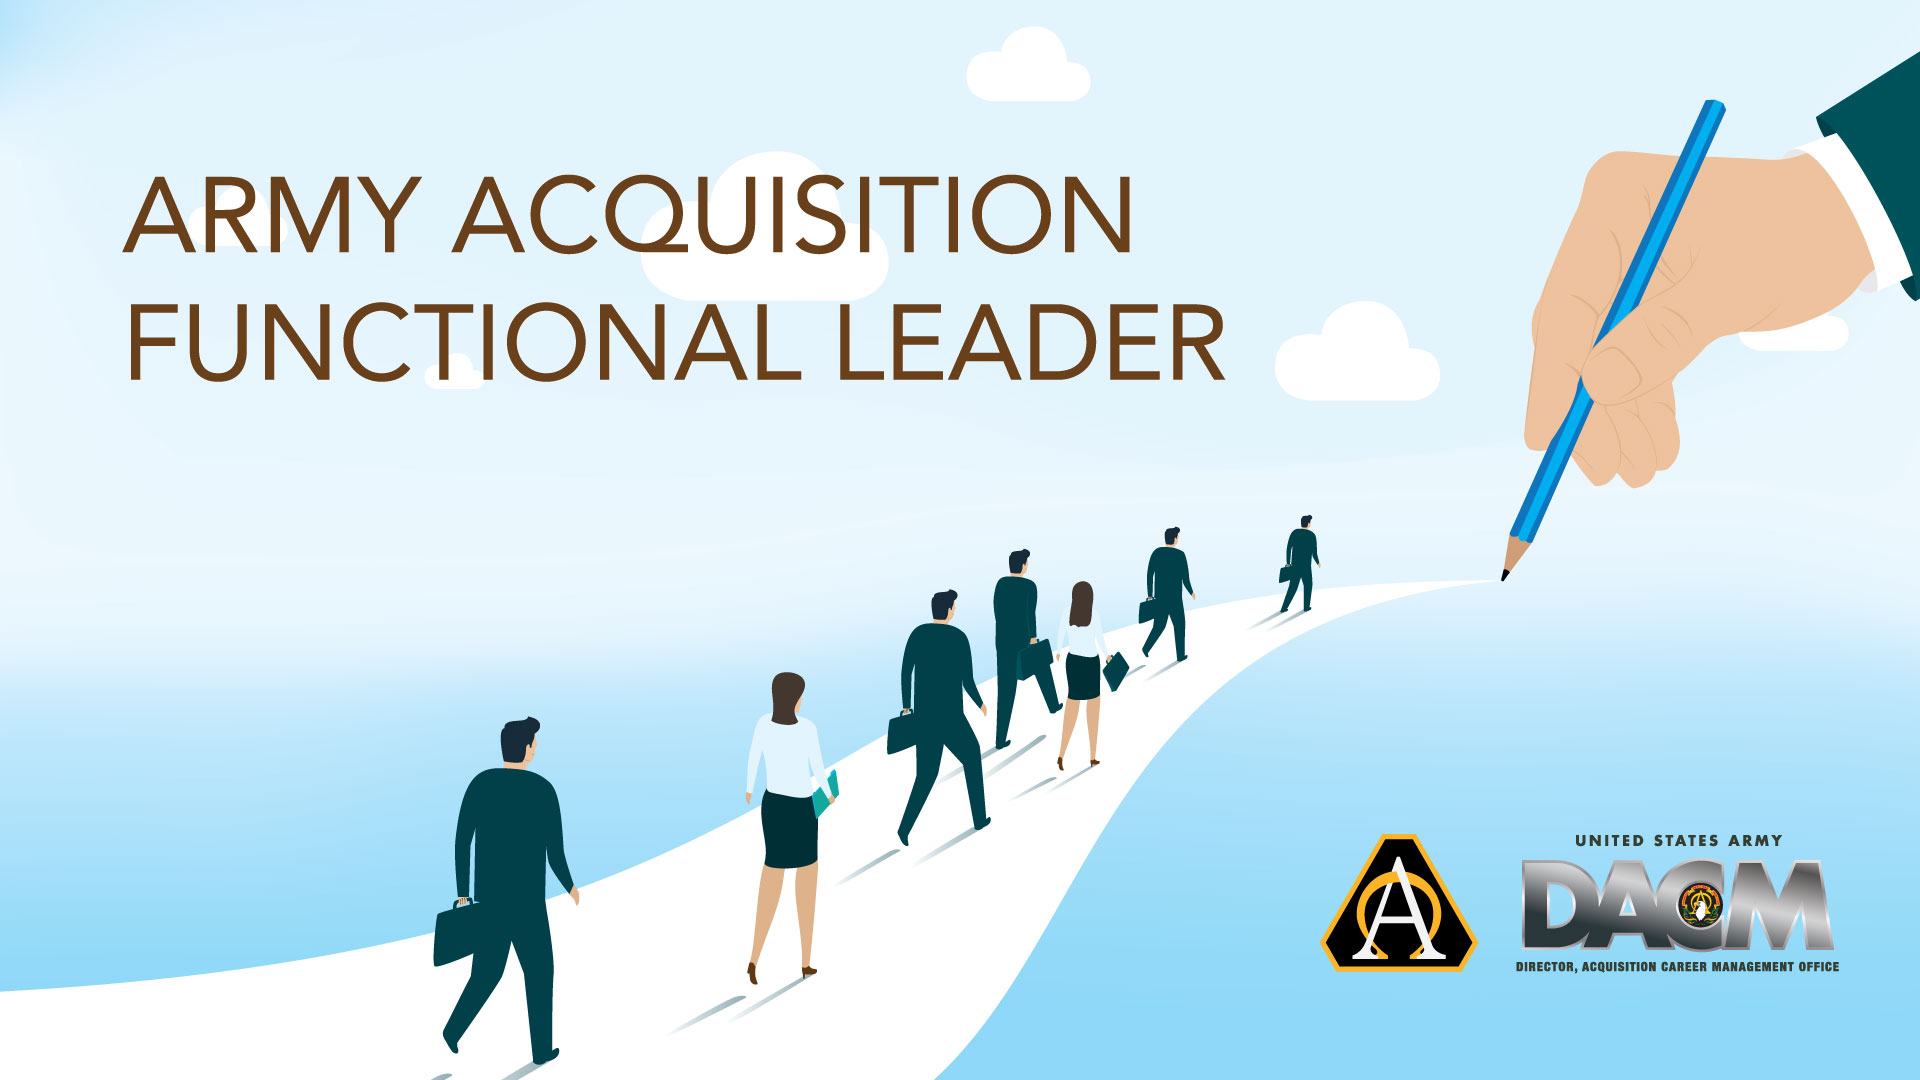 Army Acquisition Functional Leader